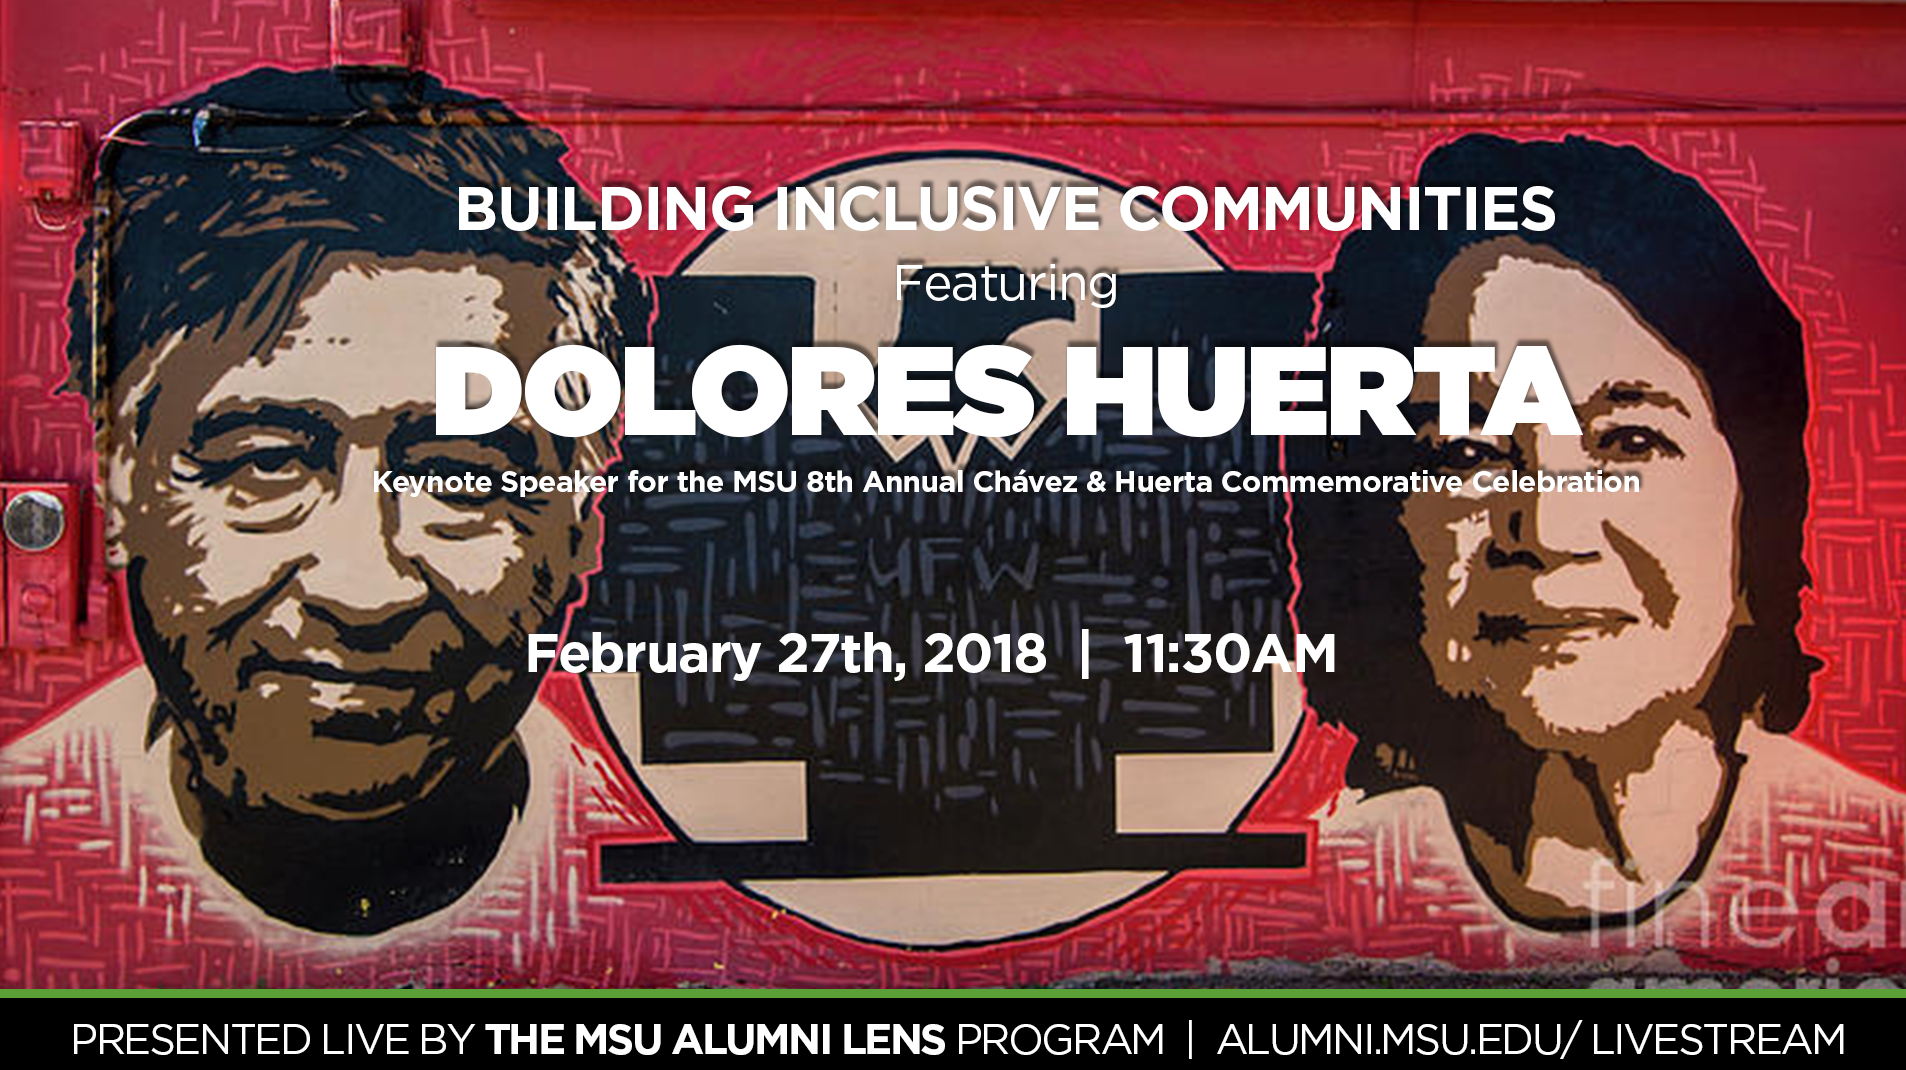 livestream cover image for The 8th Annual MSU Regional César E. Chávez & Dolores Huerta Commemorative Celebration